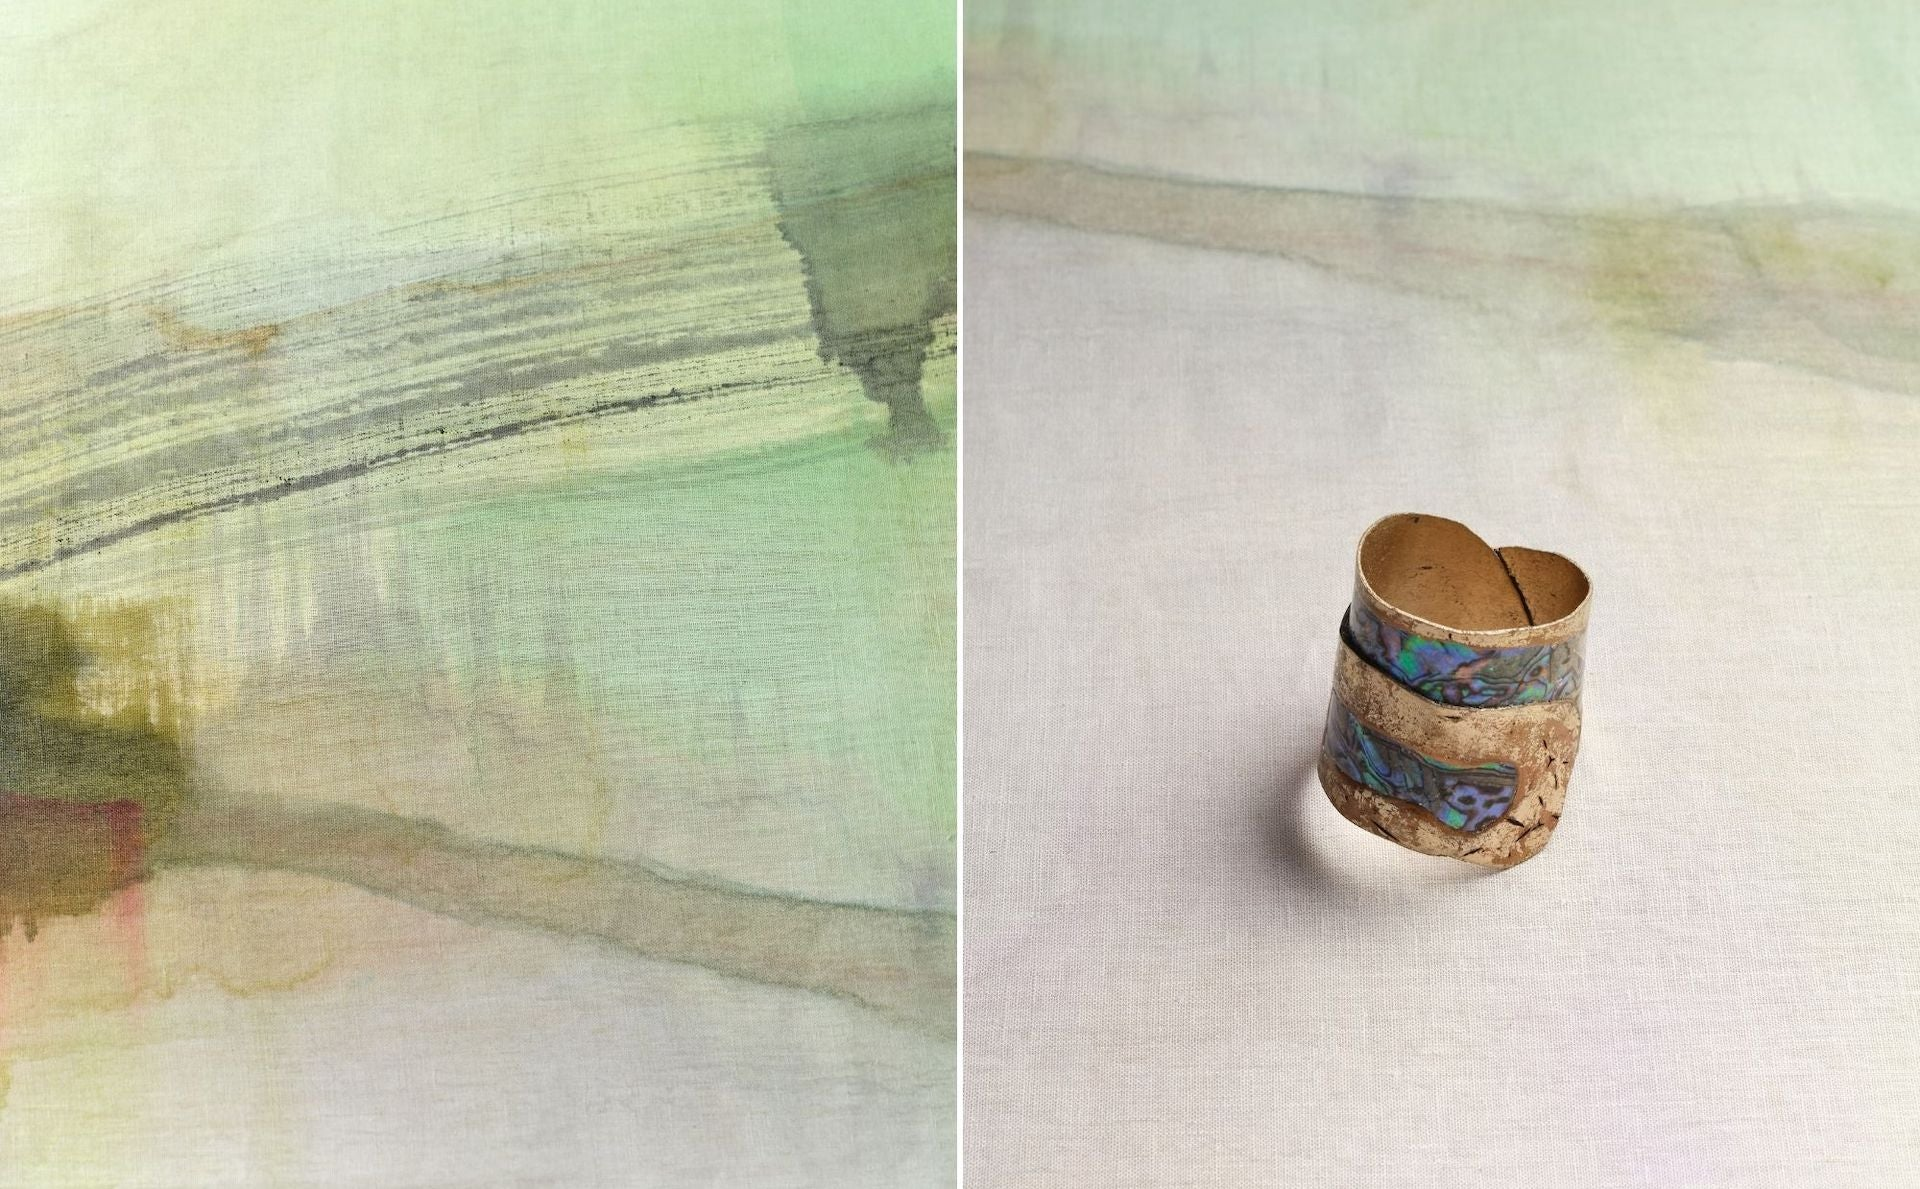 Natural Linen Tablecloth and Mother of Pearl Napkin Bracelet by Yolande Milan Batteau for The Feast. Photos © DM/BX